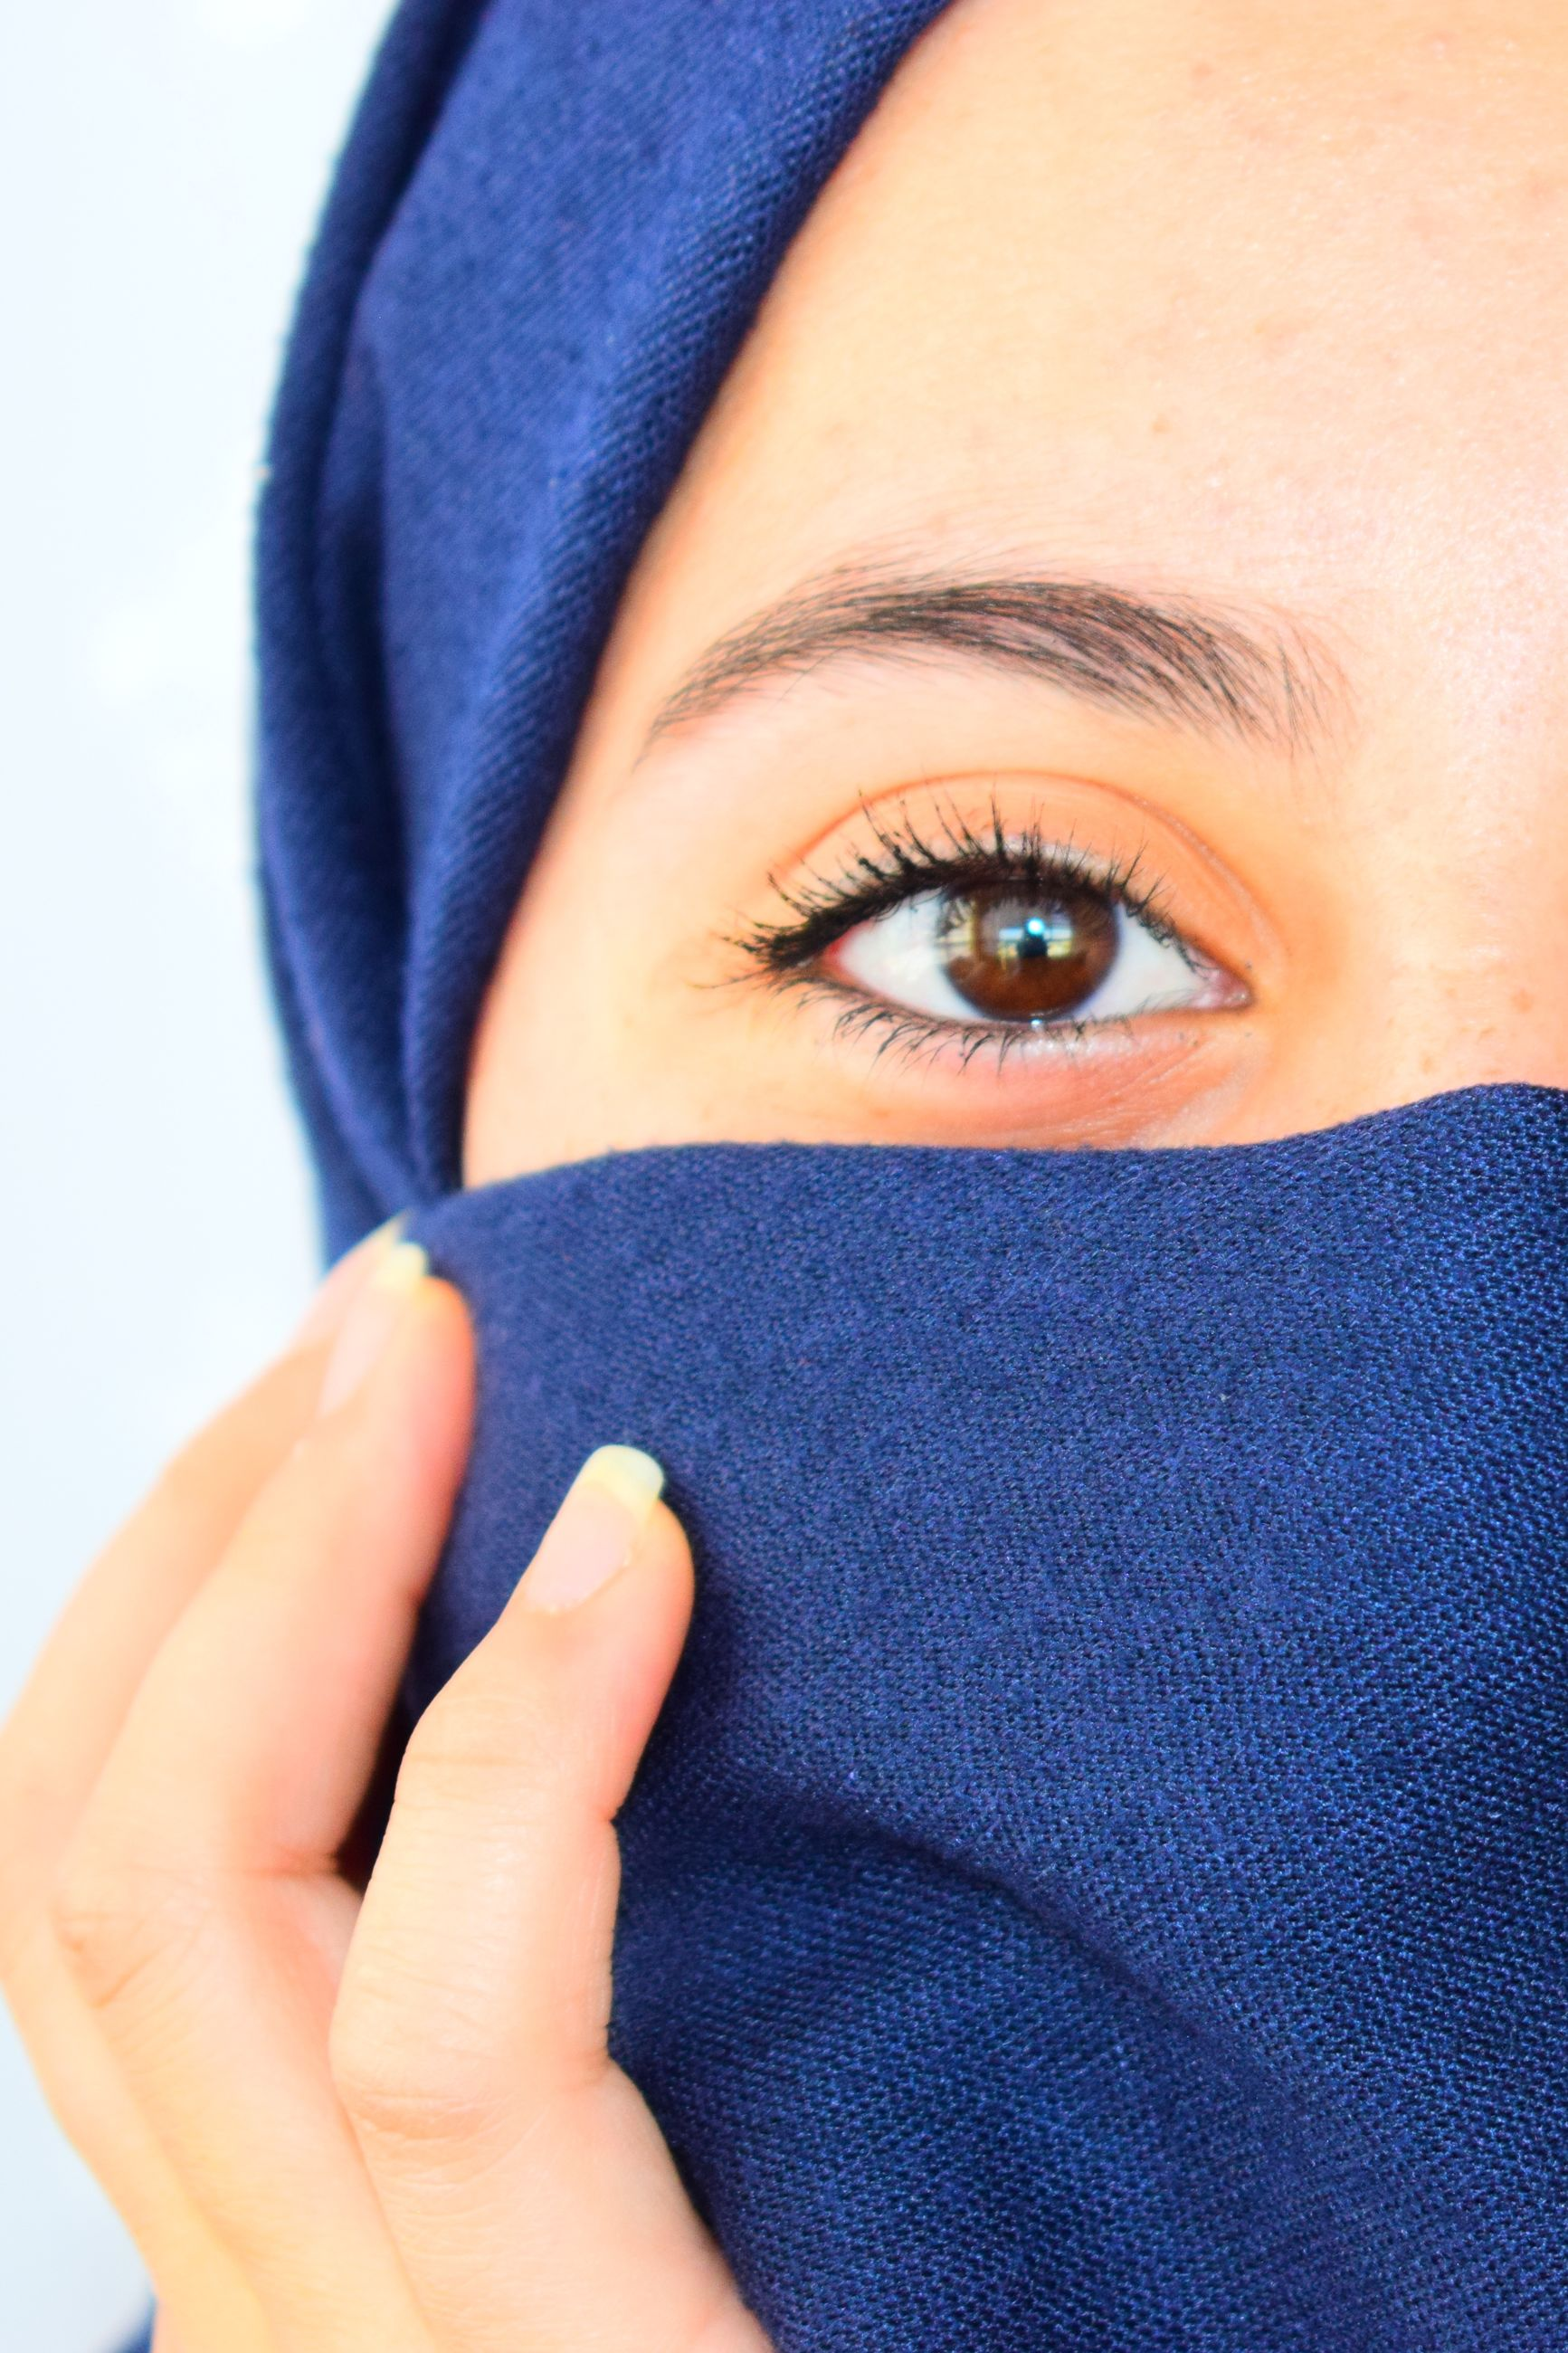 human body part, one person, body part, young adult, portrait, human face, headshot, looking at camera, close-up, front view, covering, eye, blue, real people, indoors, clothing, lifestyles, young women, human hand, scarf, obscured face, eyebrow, beautiful woman, warm clothing, purple